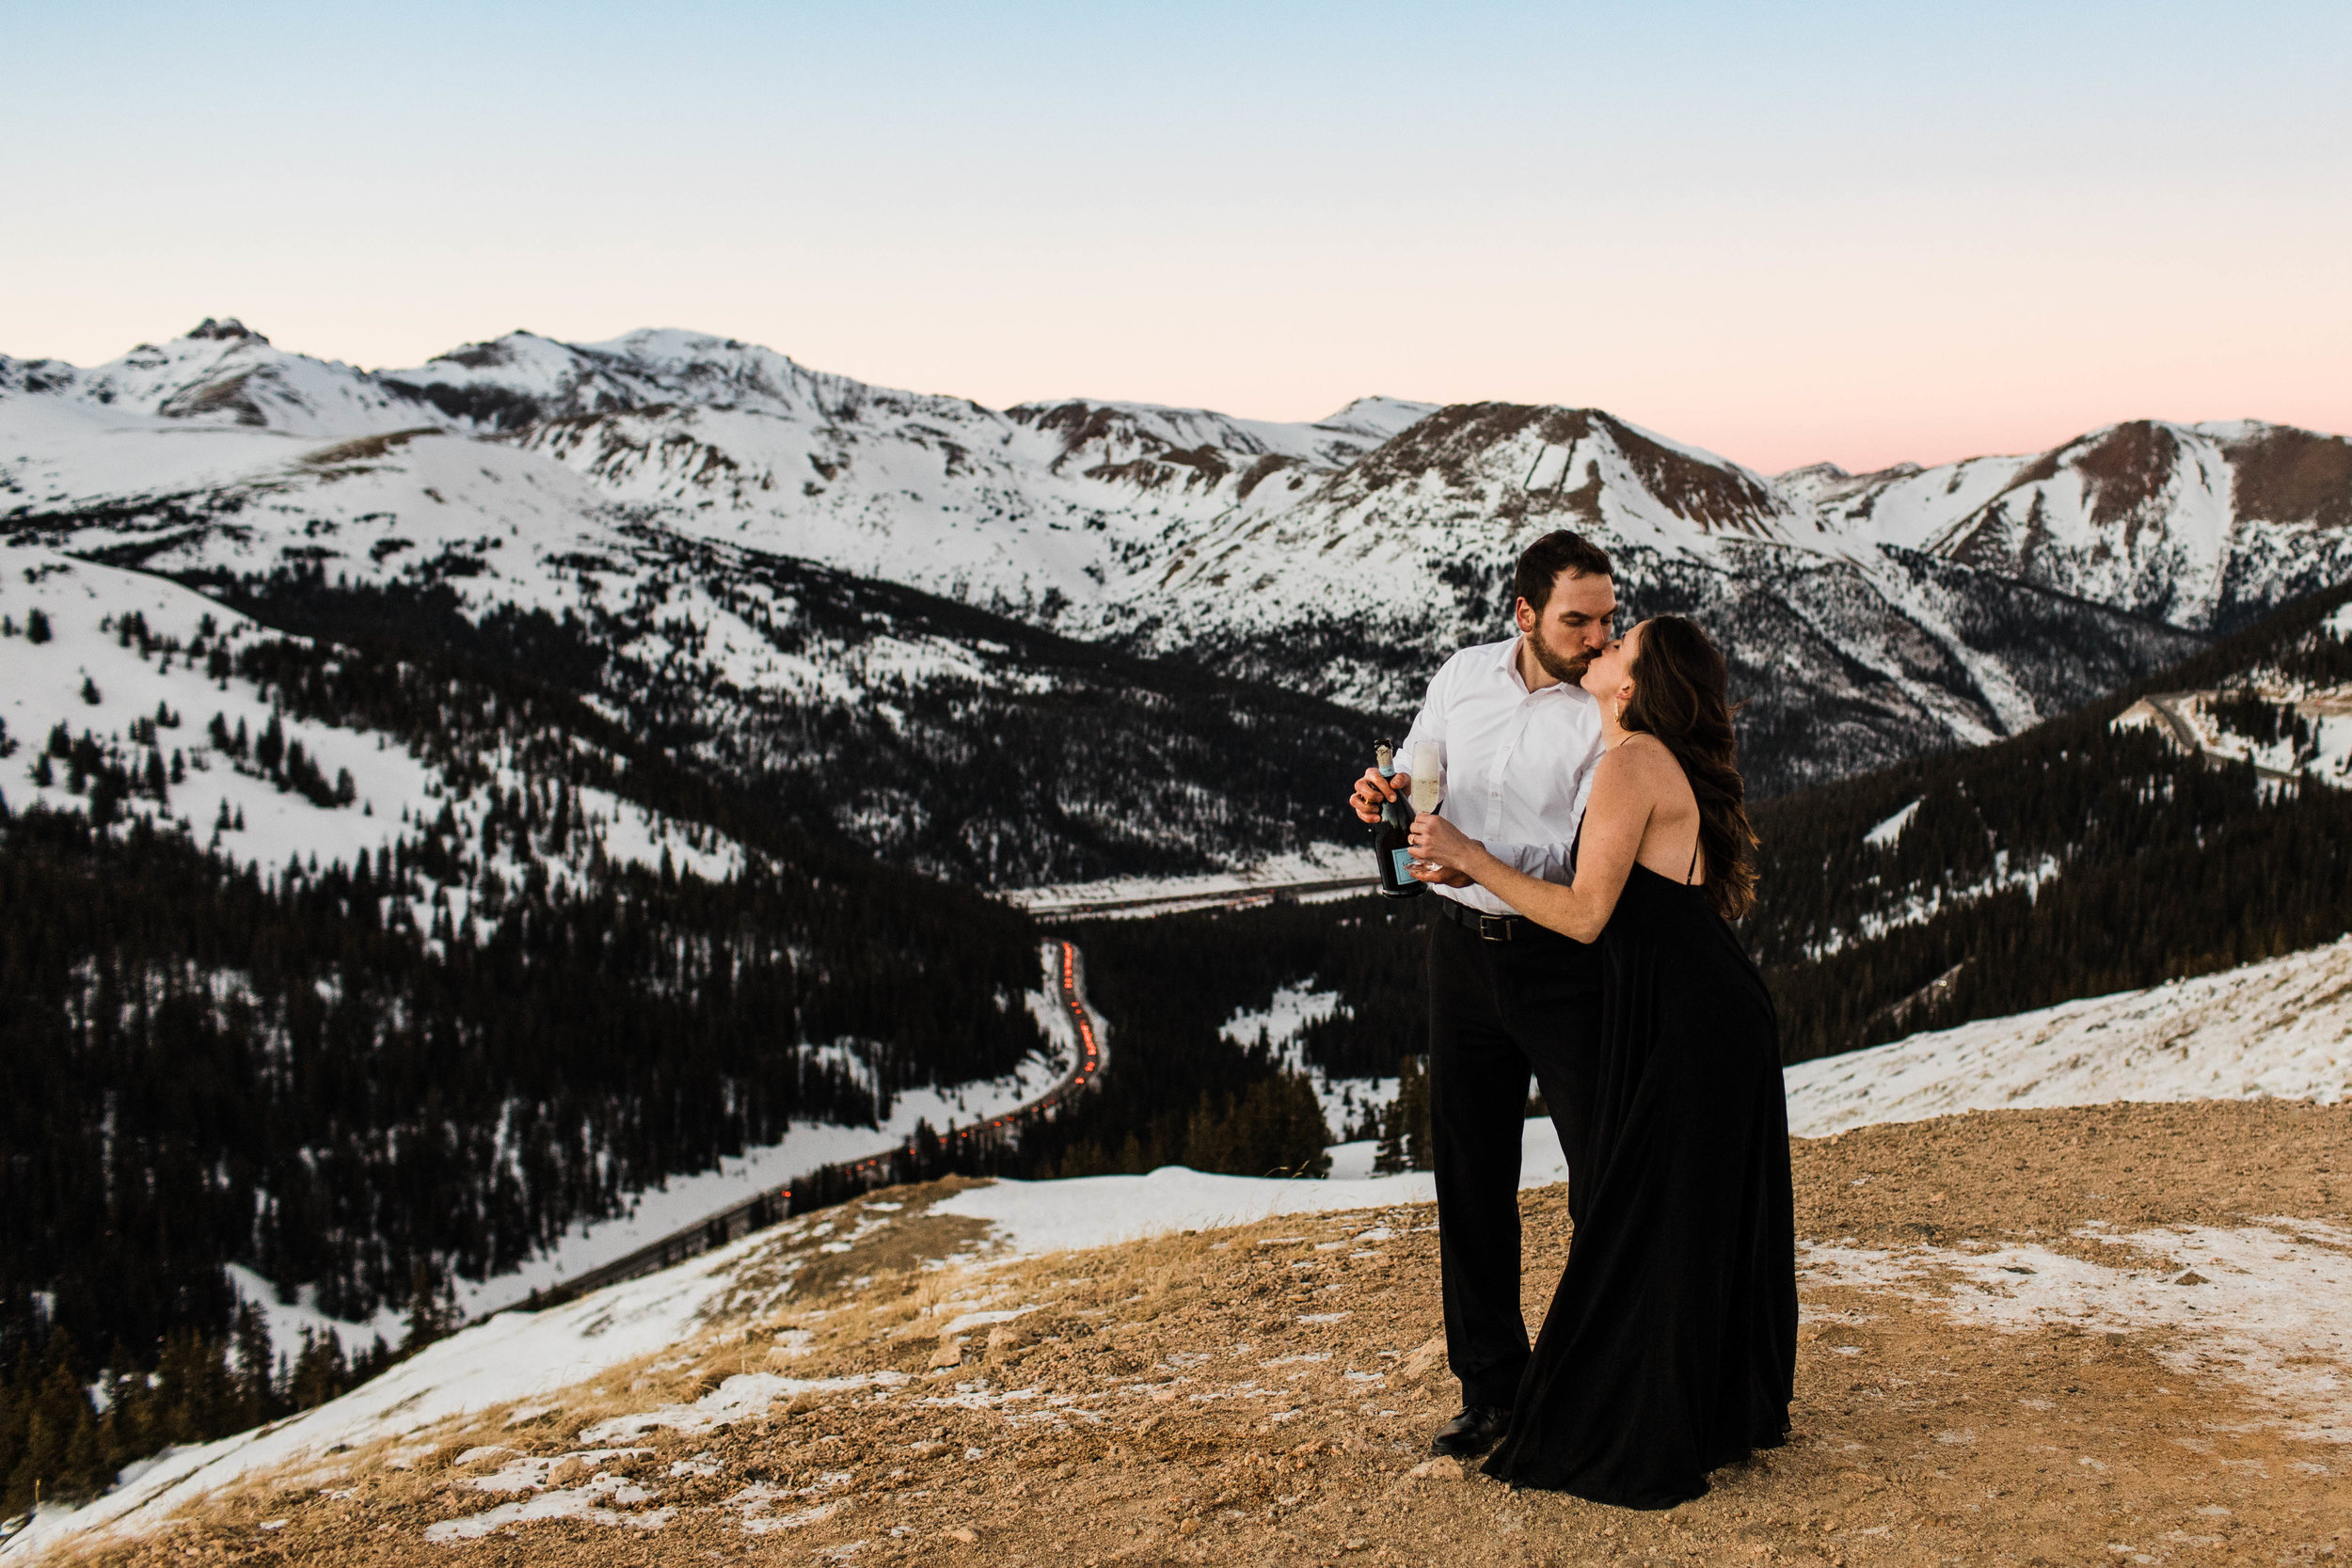 Champagne adventure session | Rocky Mountains Colorado Elopement Photographer